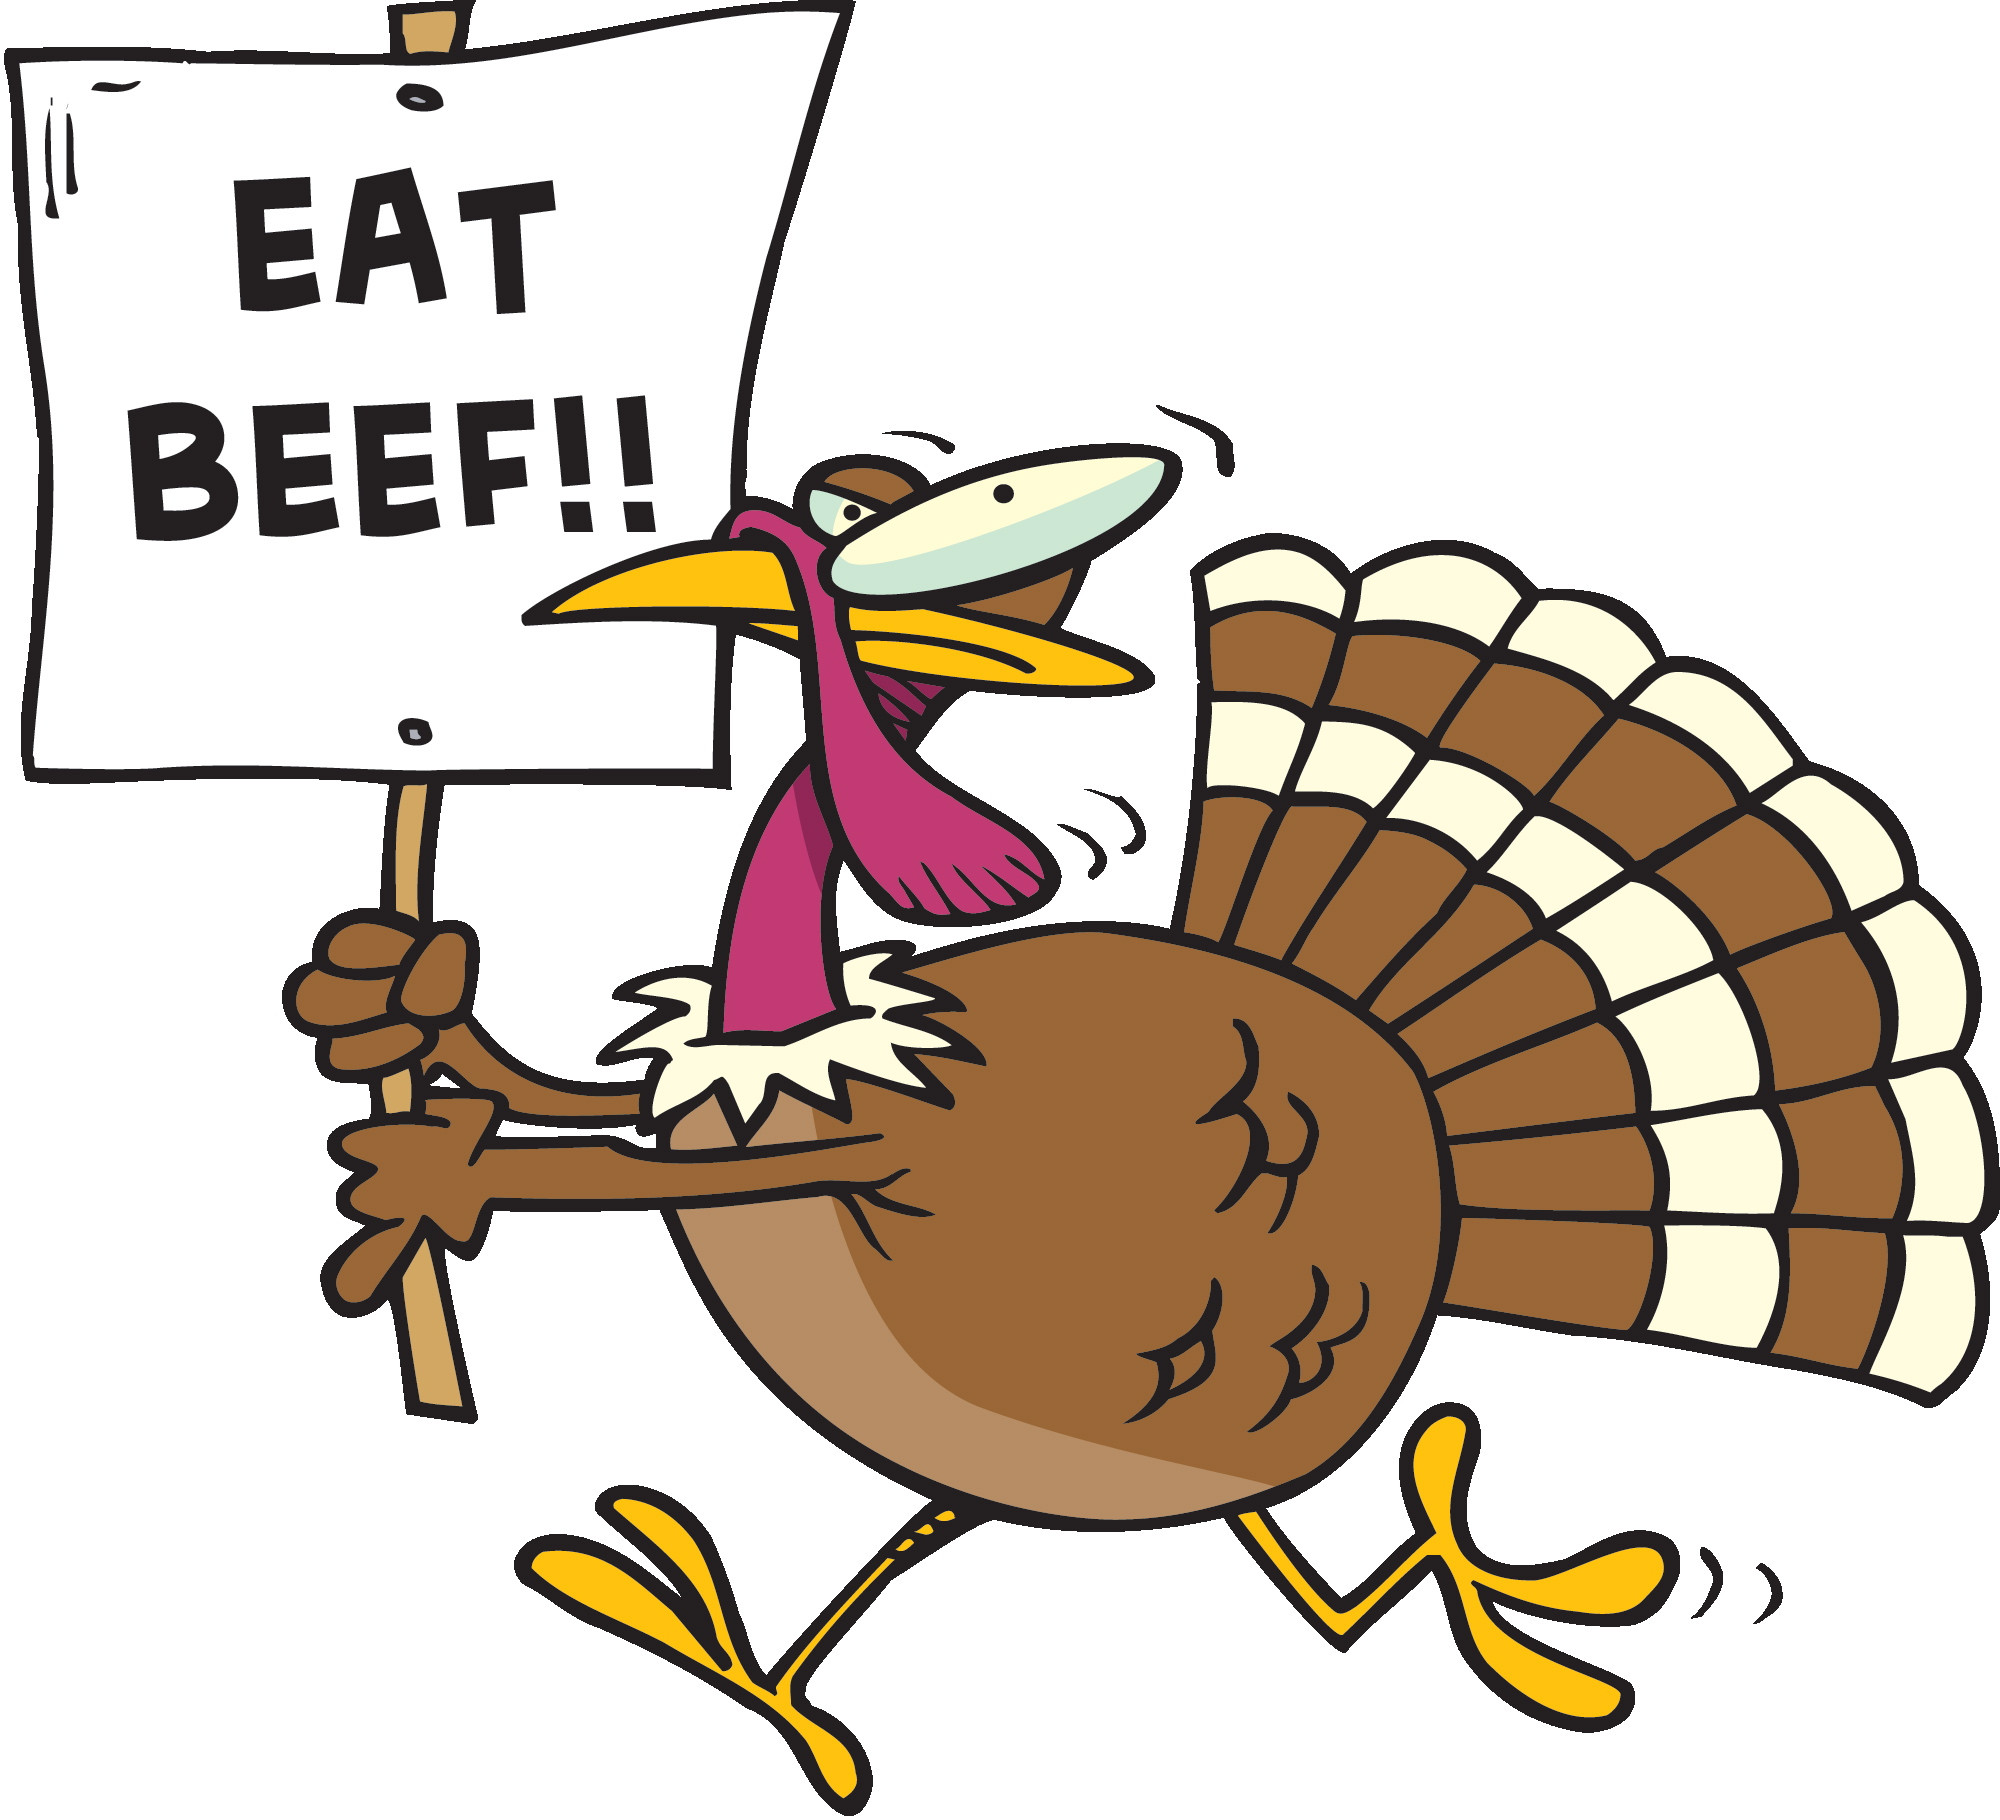 Thanksgiving Turkey Funny  Eat Beef Funny Turkey Clipart Image